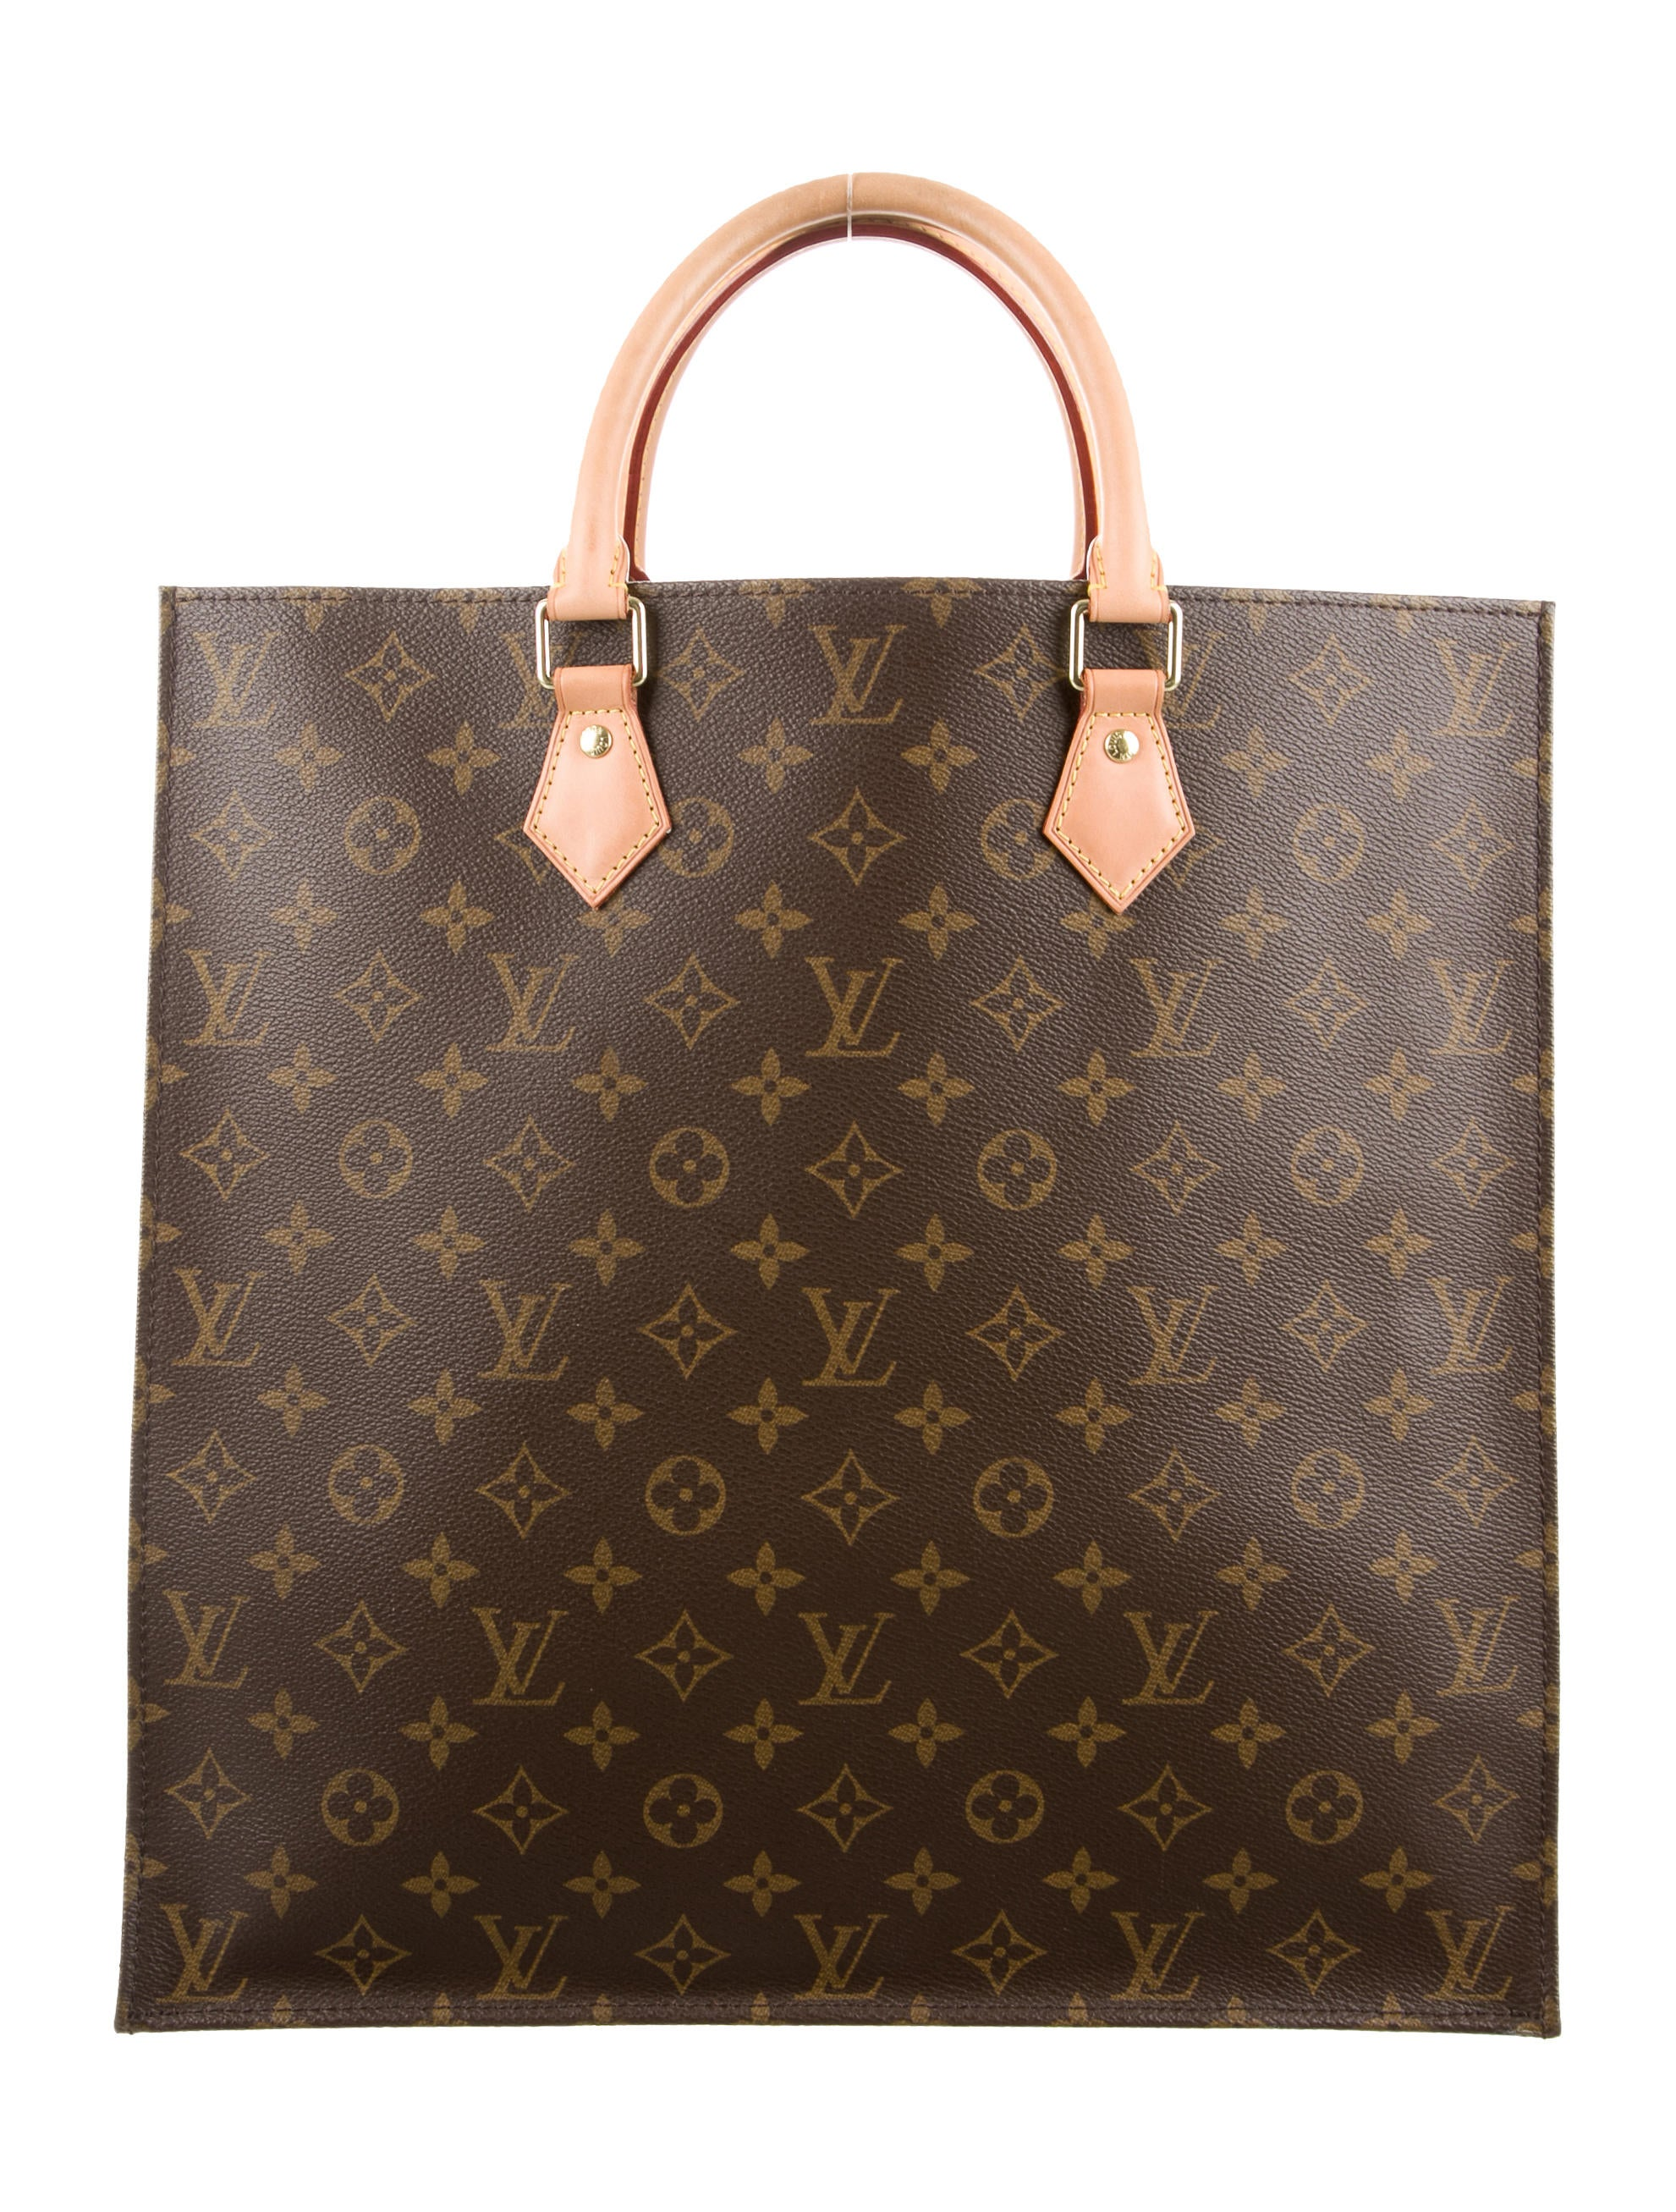 Louis vuitton monogram sac plat nm handbags lou104158 for Louis vuitton monogram miroir sac plat